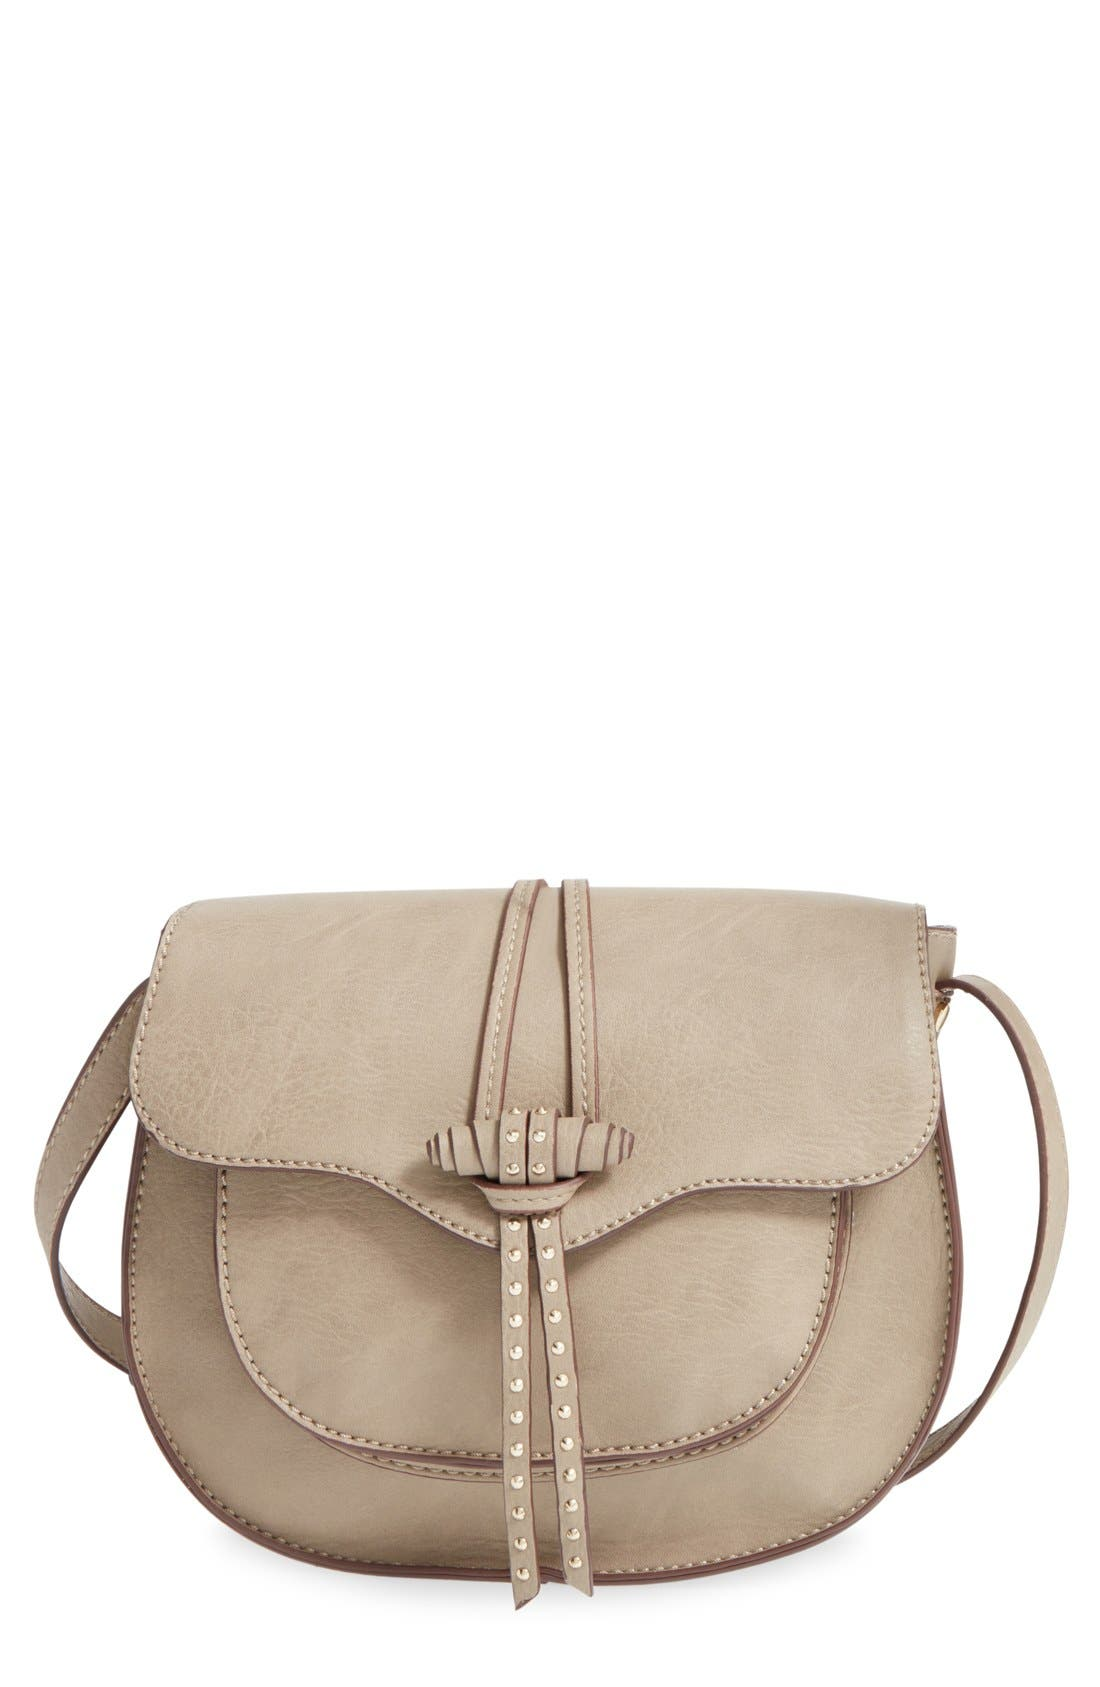 Main Image - Steven by Steve Madden 'Bbianca' Faux Leather Crossbody Saddle Bag